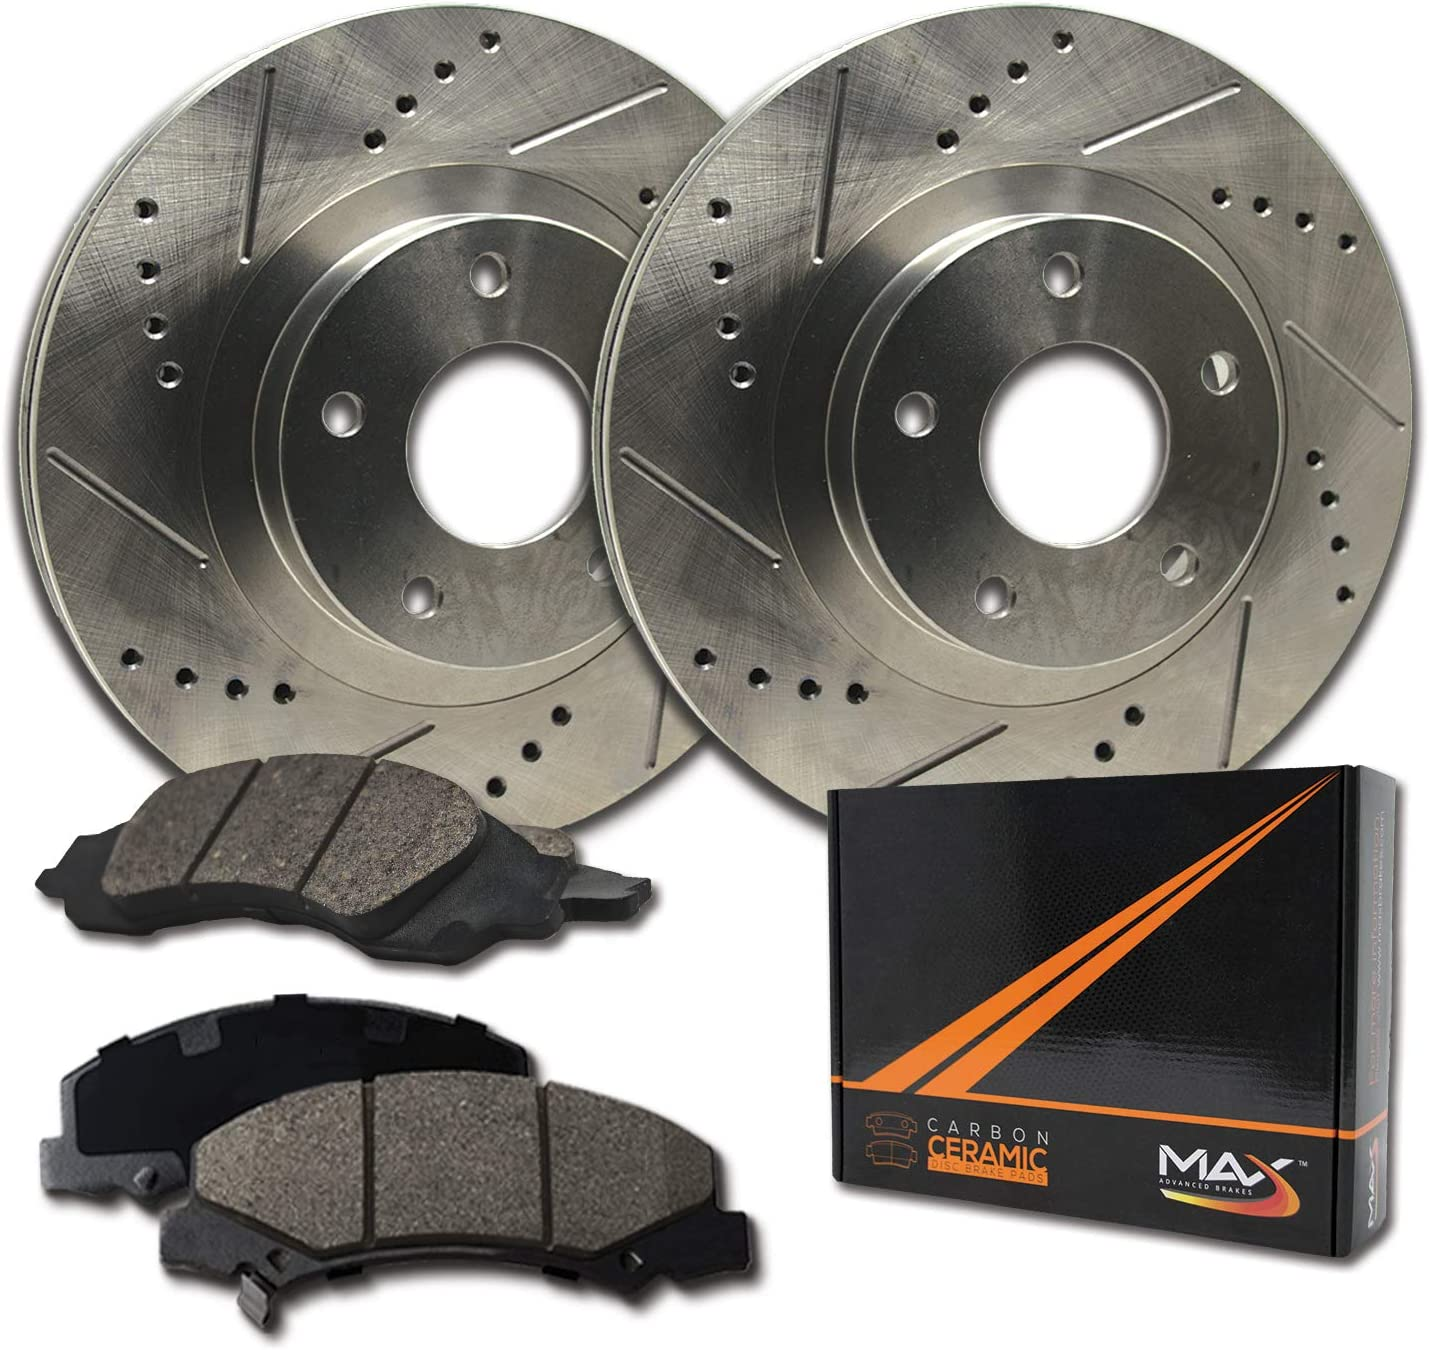 KT020822 Premium Cross Drilled Rotors + Ceramic Pads Fits: 2006 06 2007 07 Dodge Ram 1500 w// 5 Lugs Rotors Max Brakes Rear Performance Brake Kit